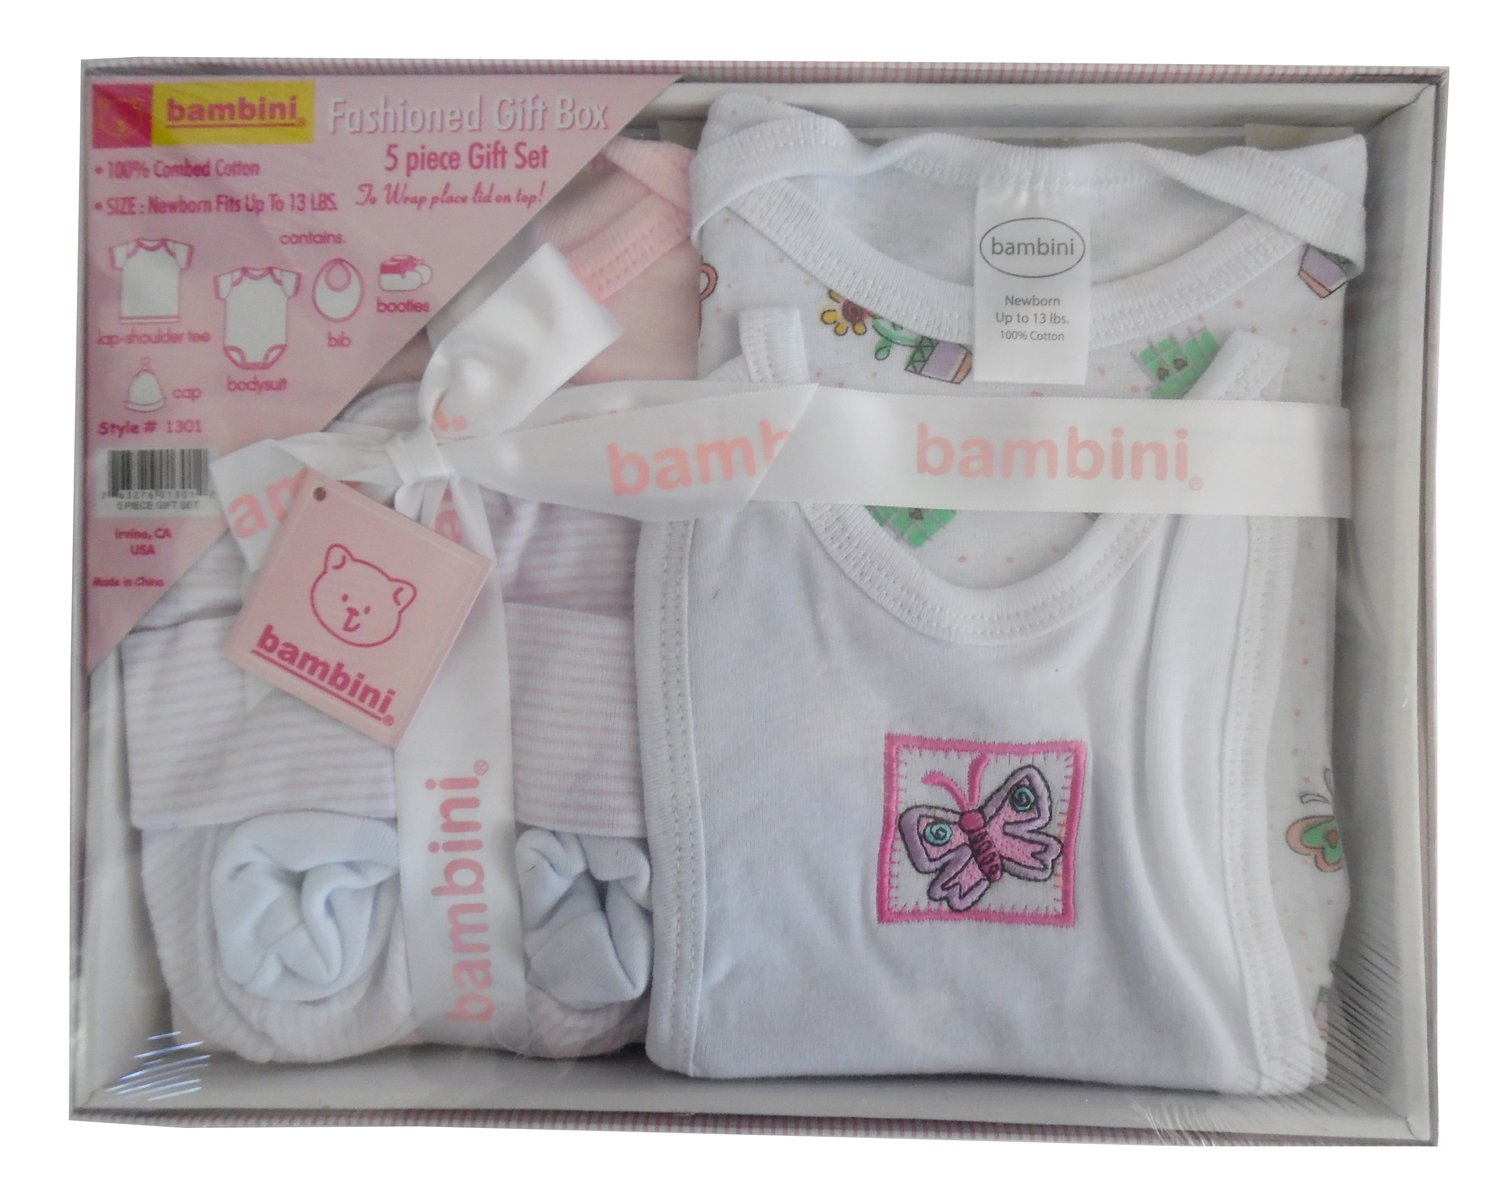 Bambini 5 Piece Gift Box - Pink - Baby World Inc